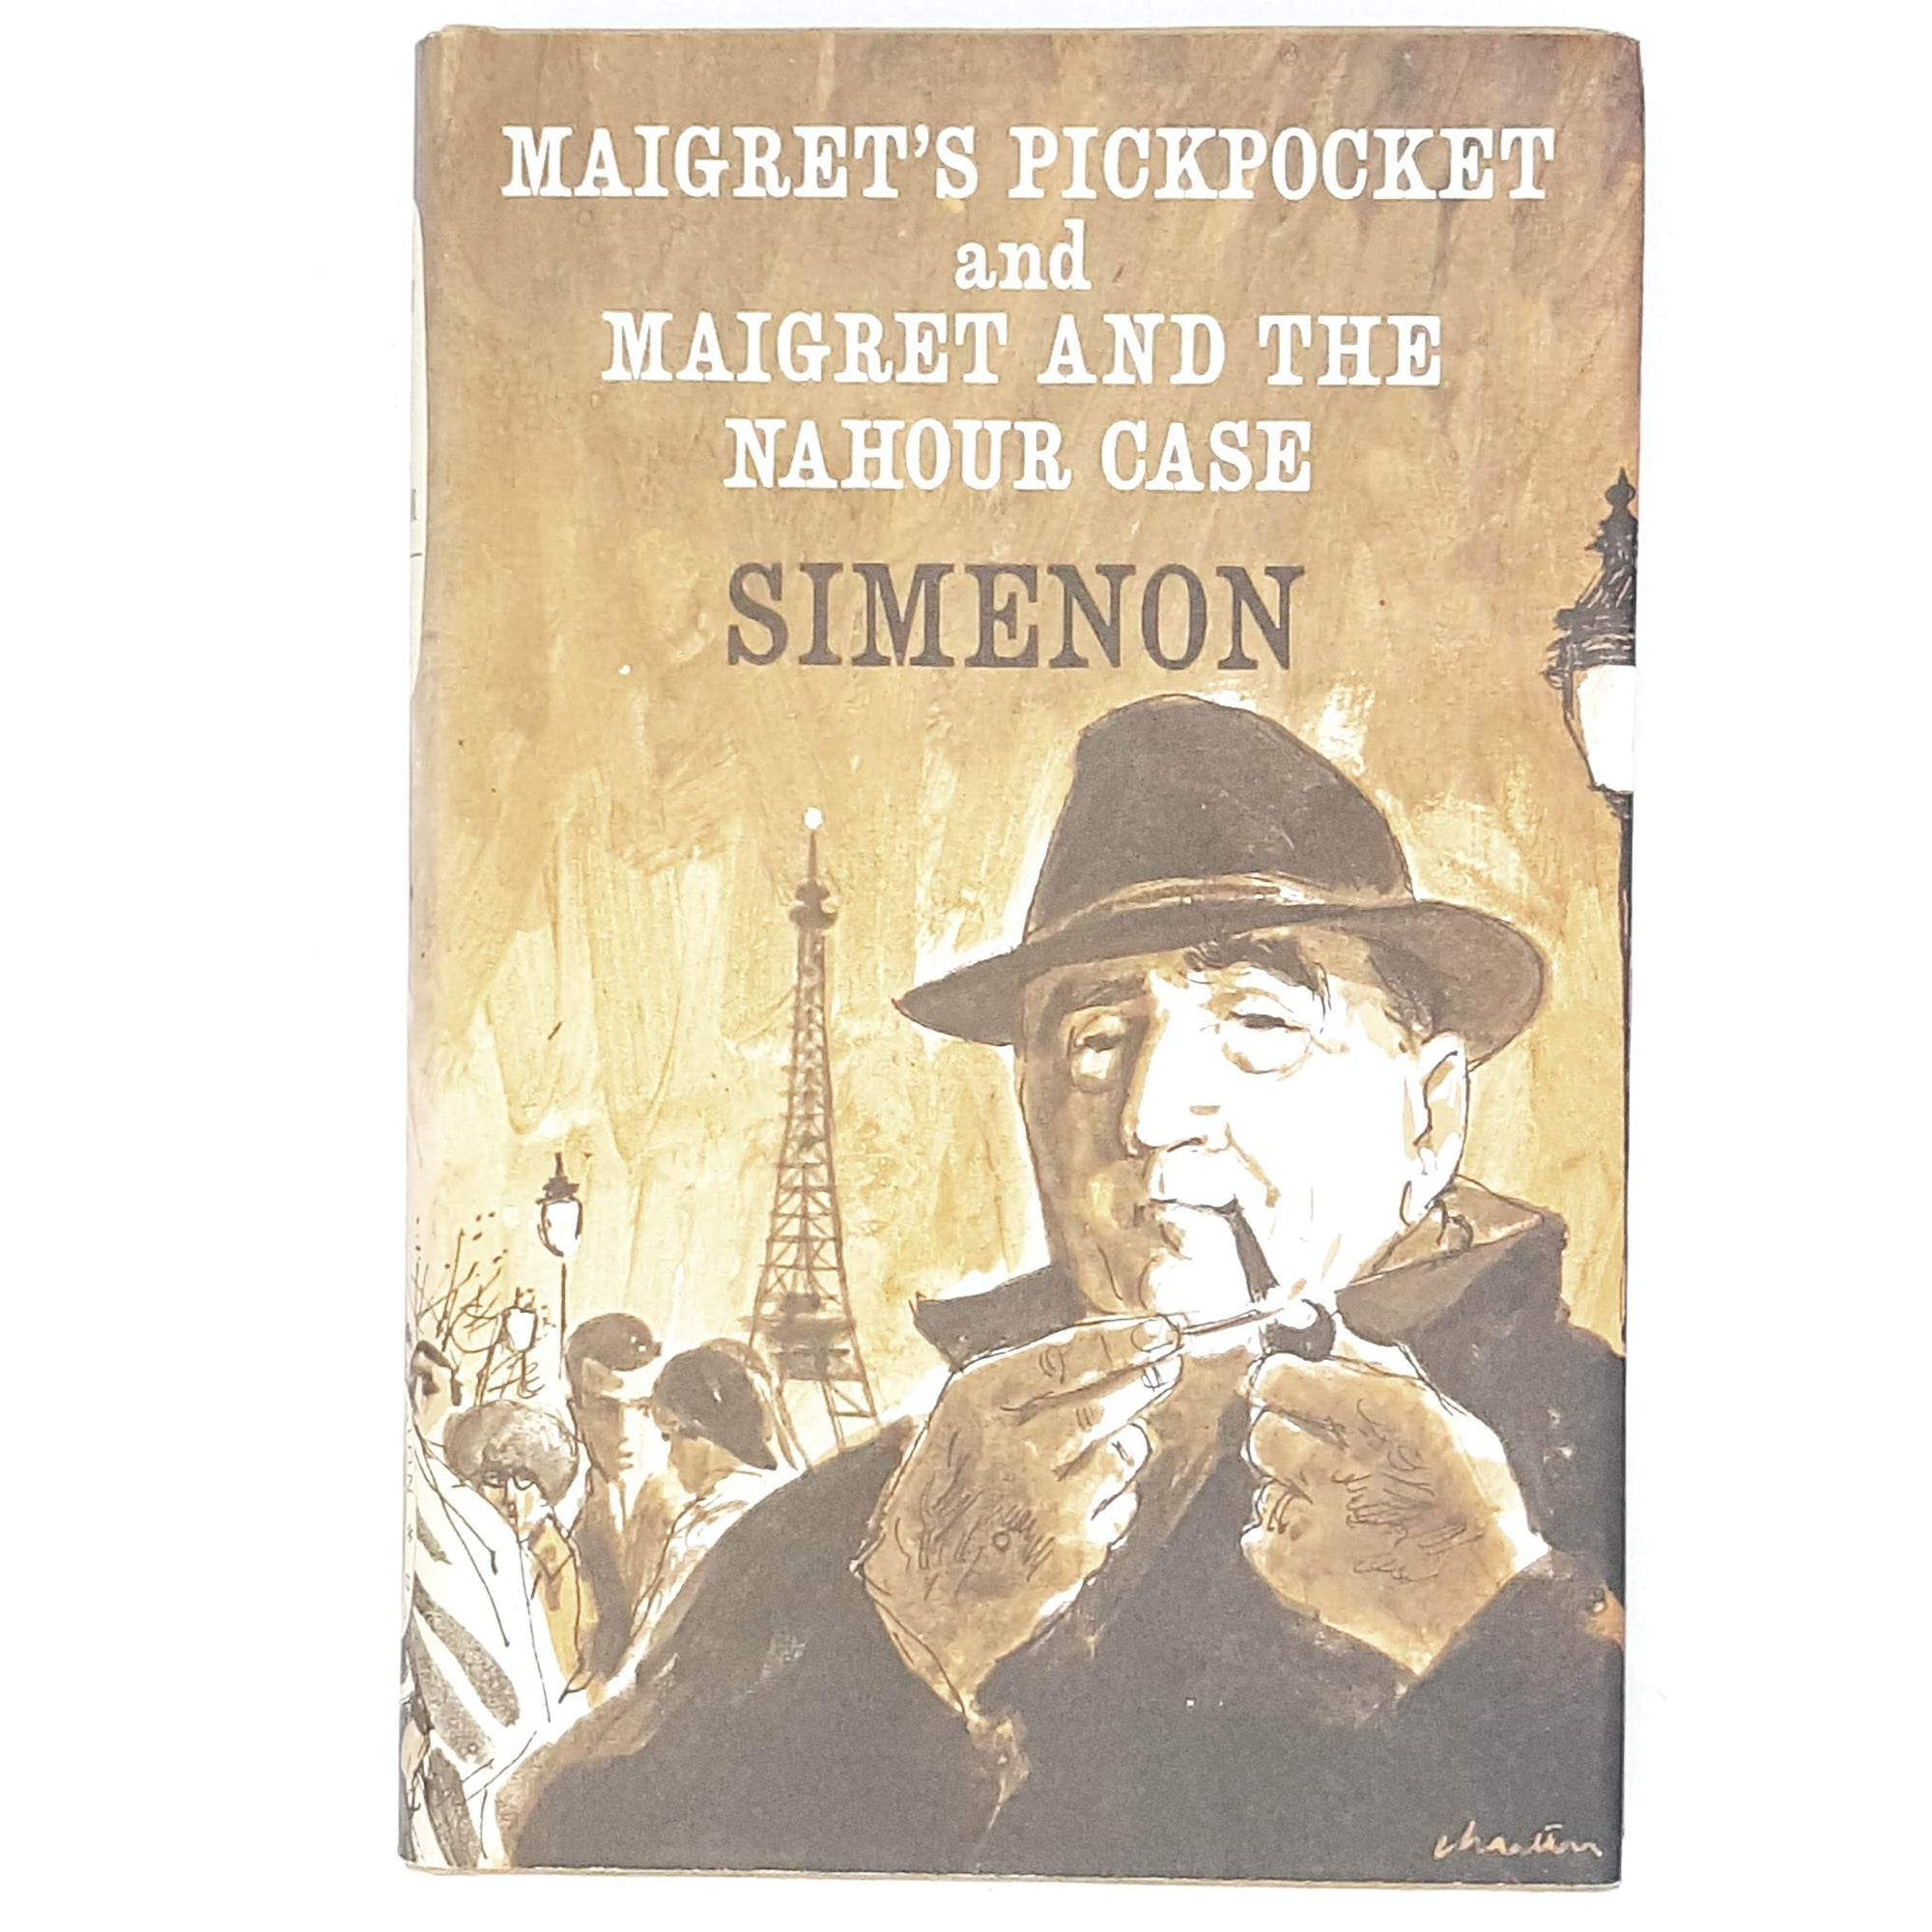 Vintage Crime: Simenon's Maigret's Pickpocket and Maigret and the Nahour Case 1968